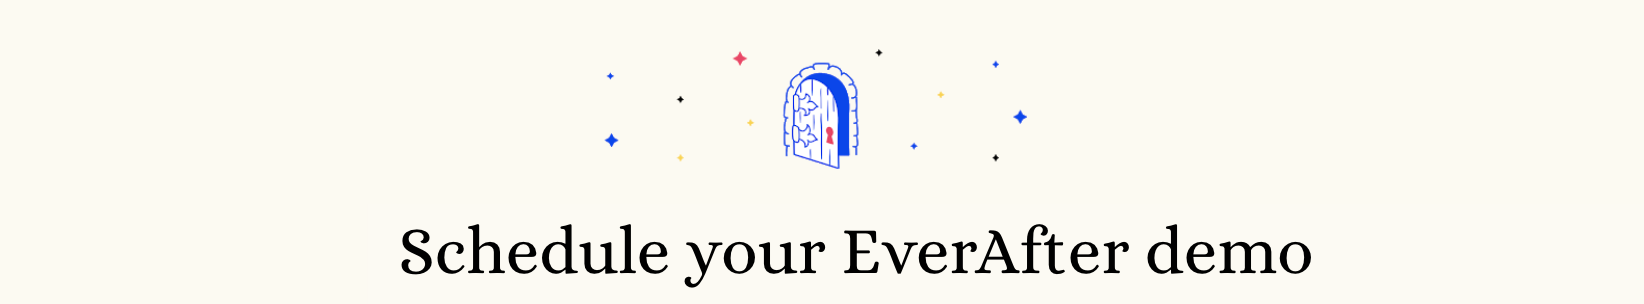 Schedule your EverAfter demo